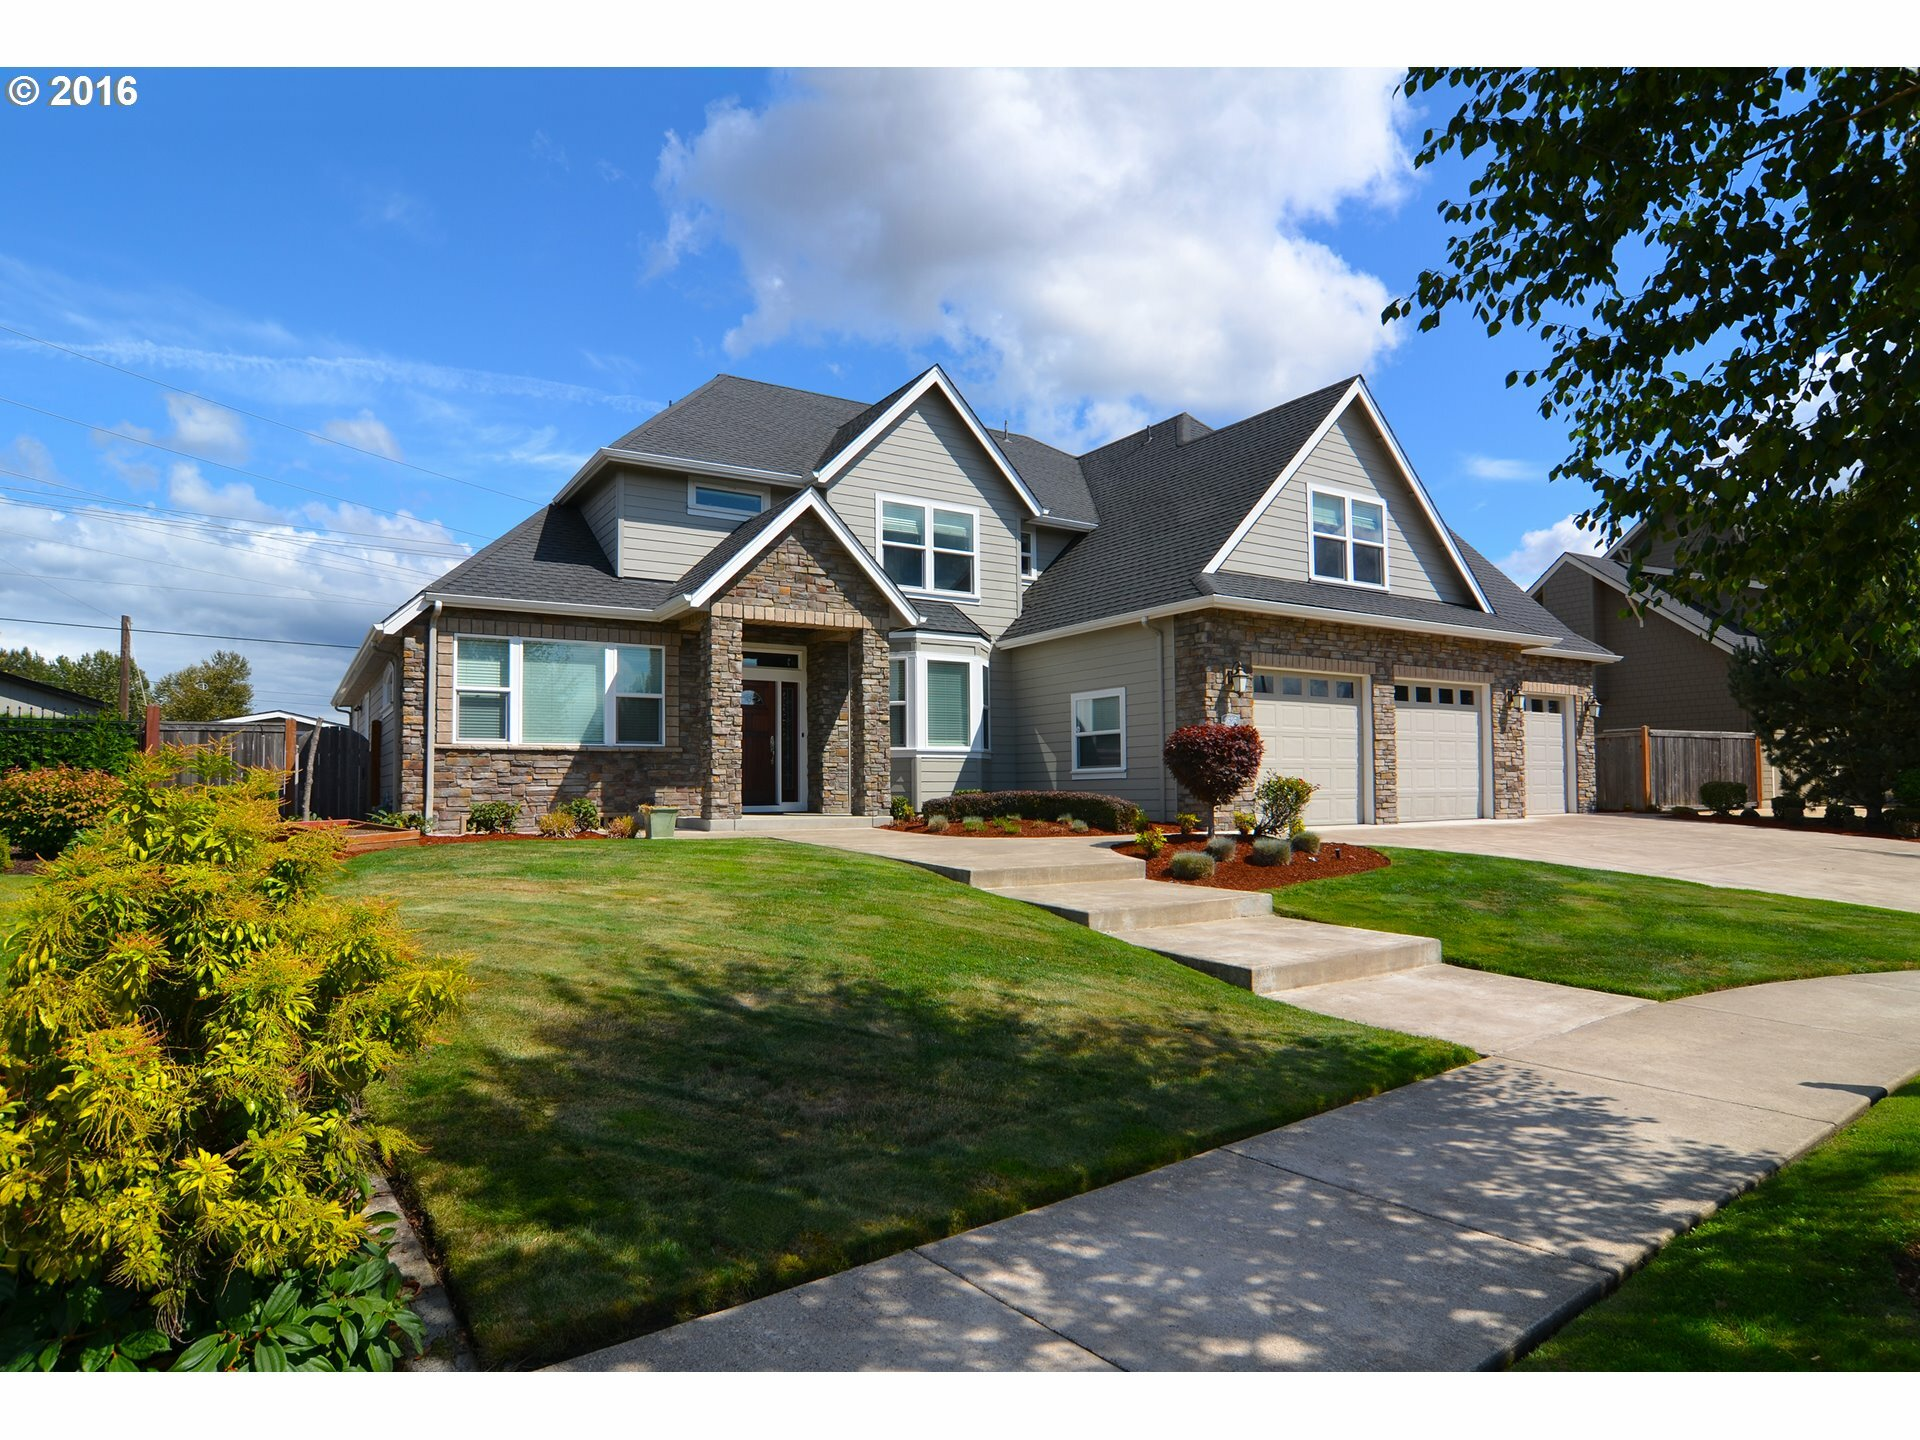 2625 Valley Forge Dr, Eugene, OR - USA (photo 1)